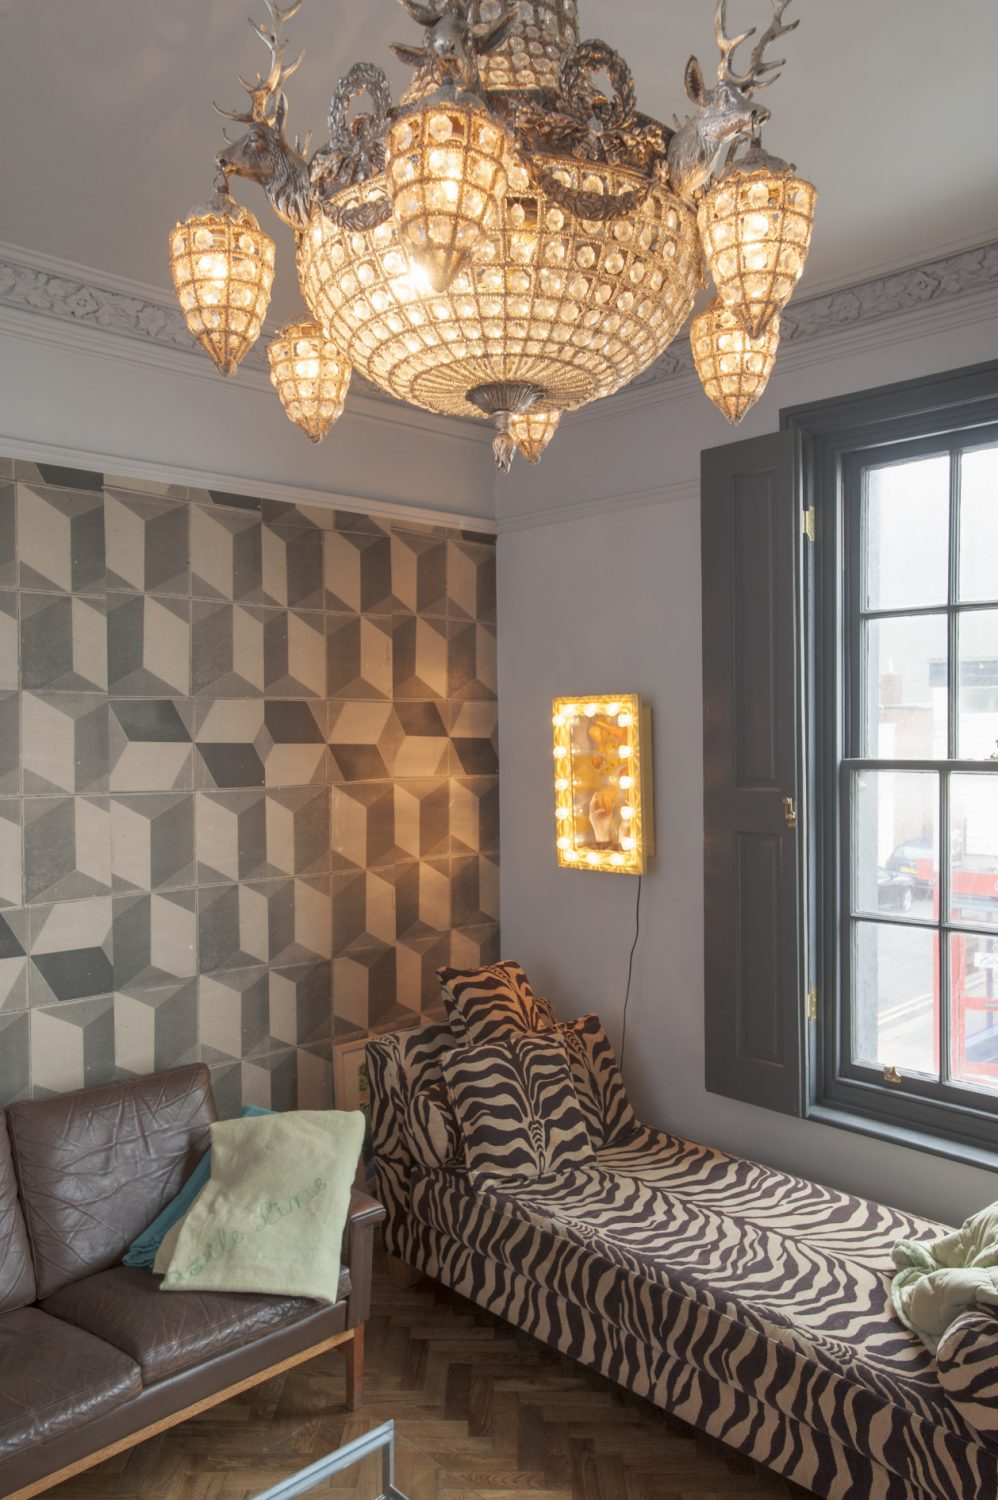 Geometric grey wallpaper lines the rear wall of the cosy 'snug' sitting room, whilst a zebra-print chaise longue is positioned next to the shuttered window